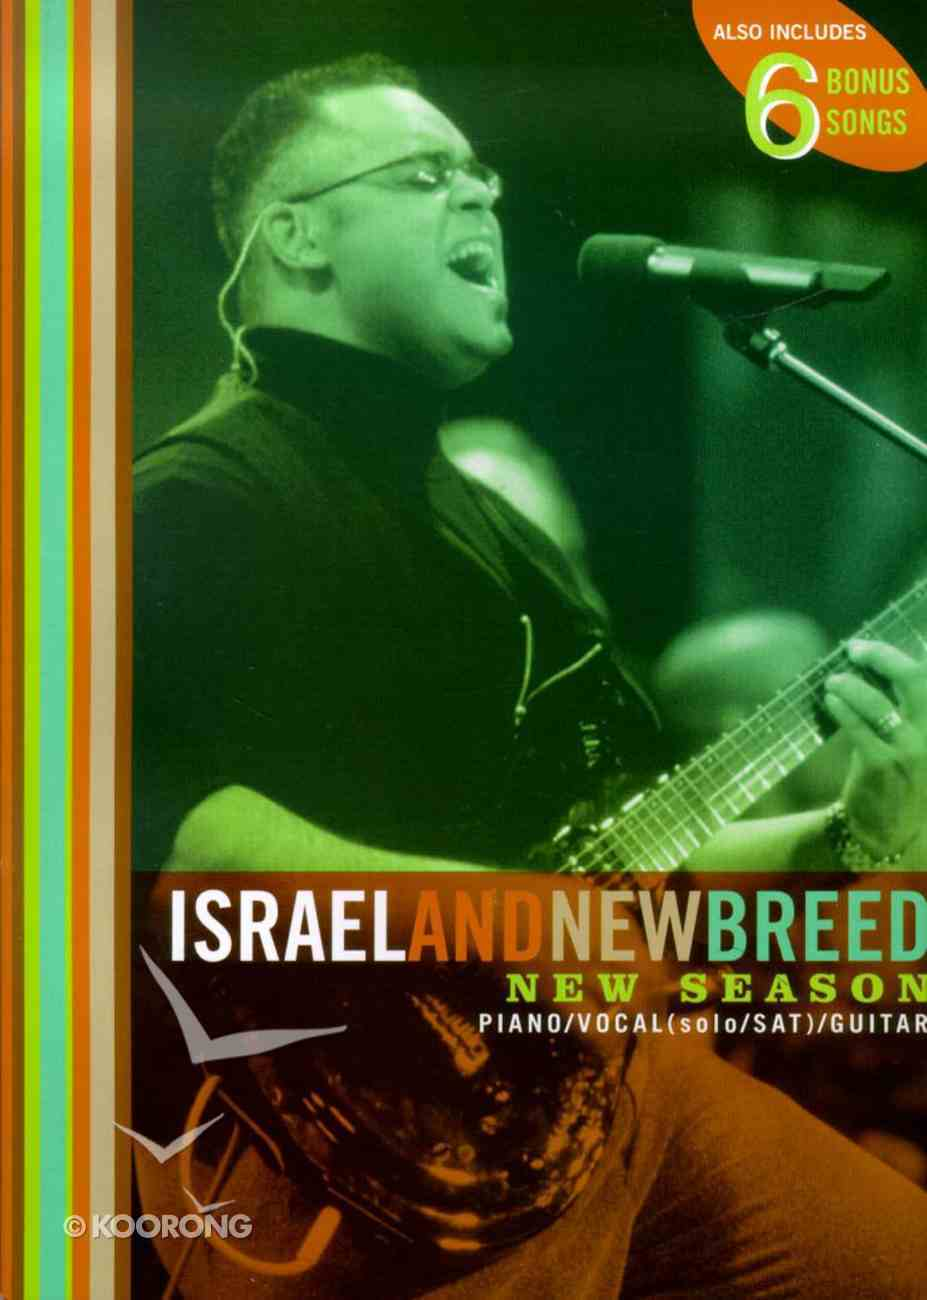 New Season With Israel and New Breed Paperback